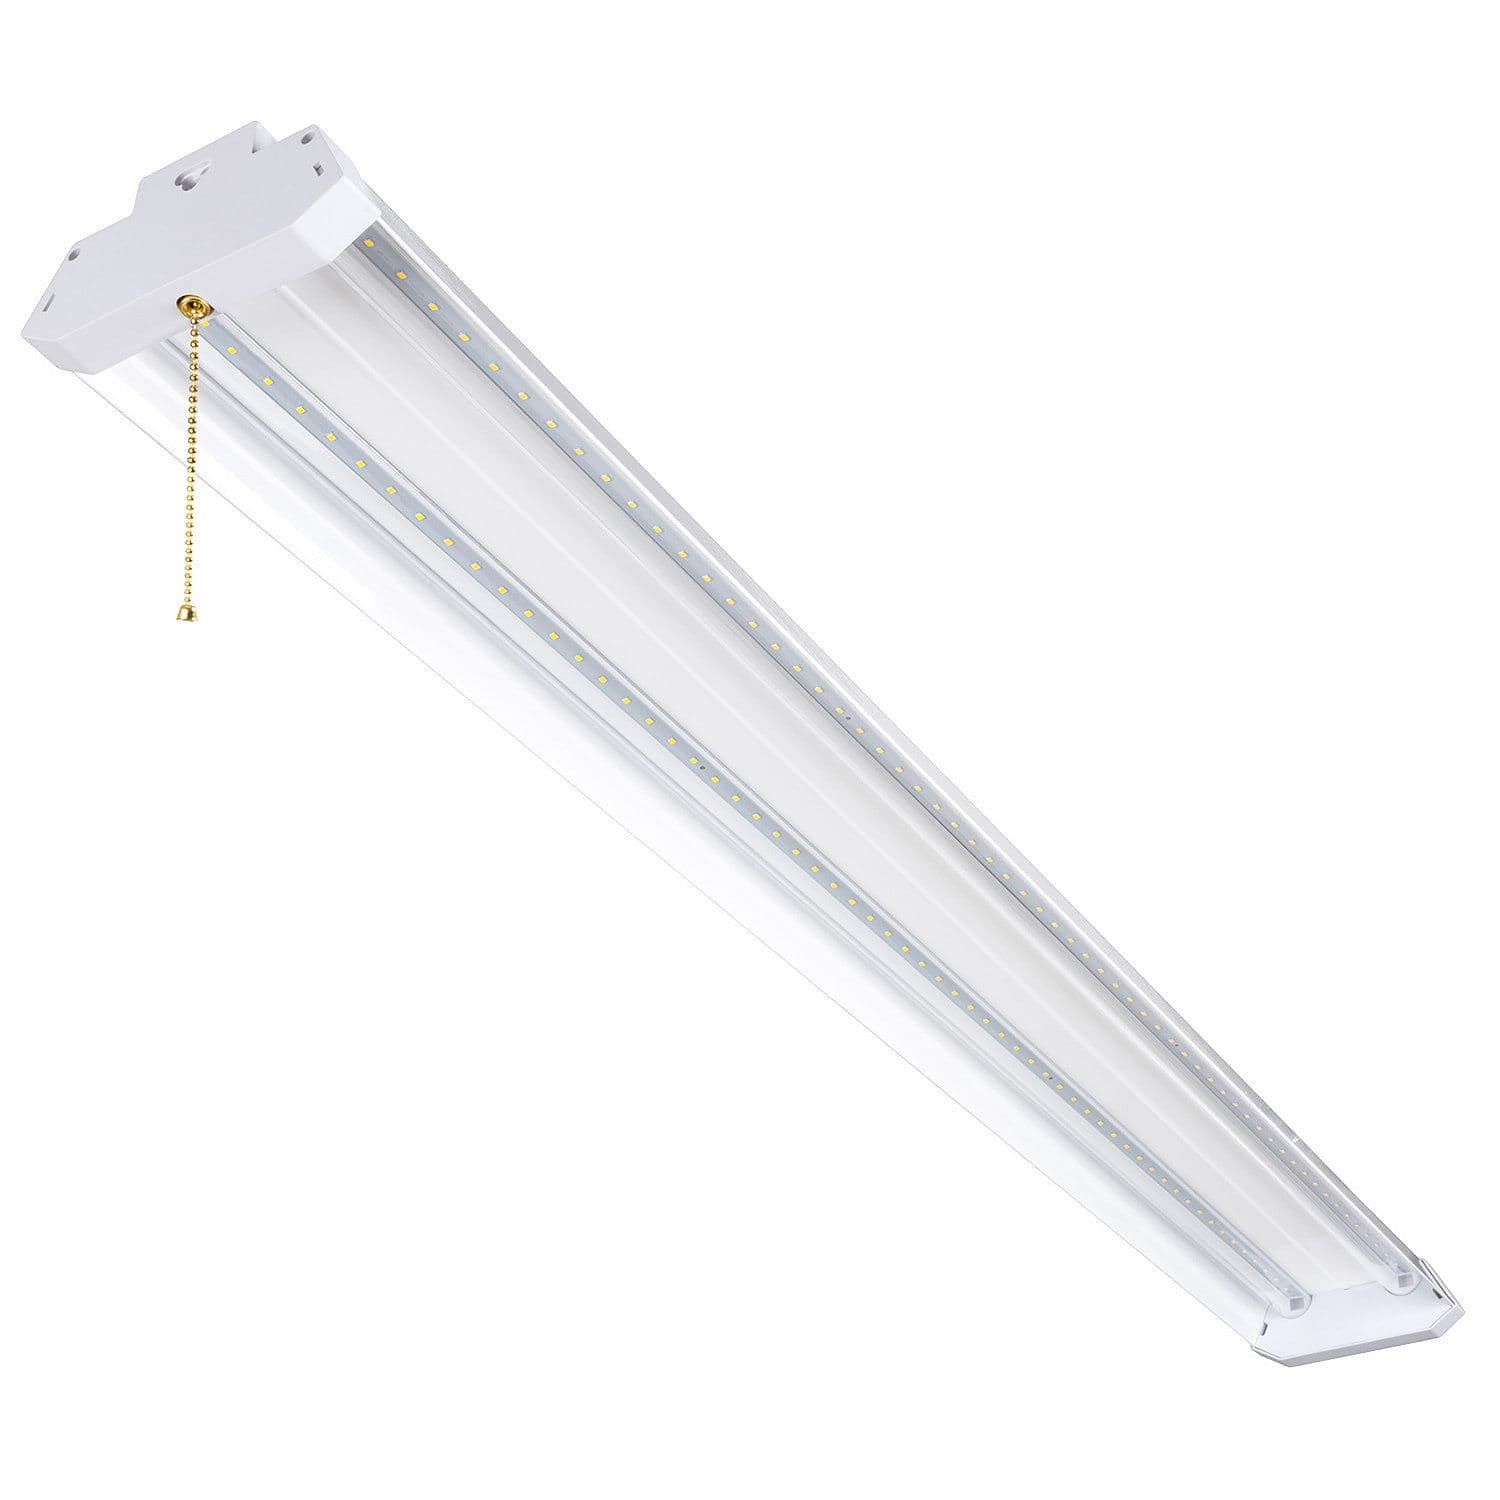 Honeywell 4-ft LED Linkable Shop Light $35 + fs or pickup